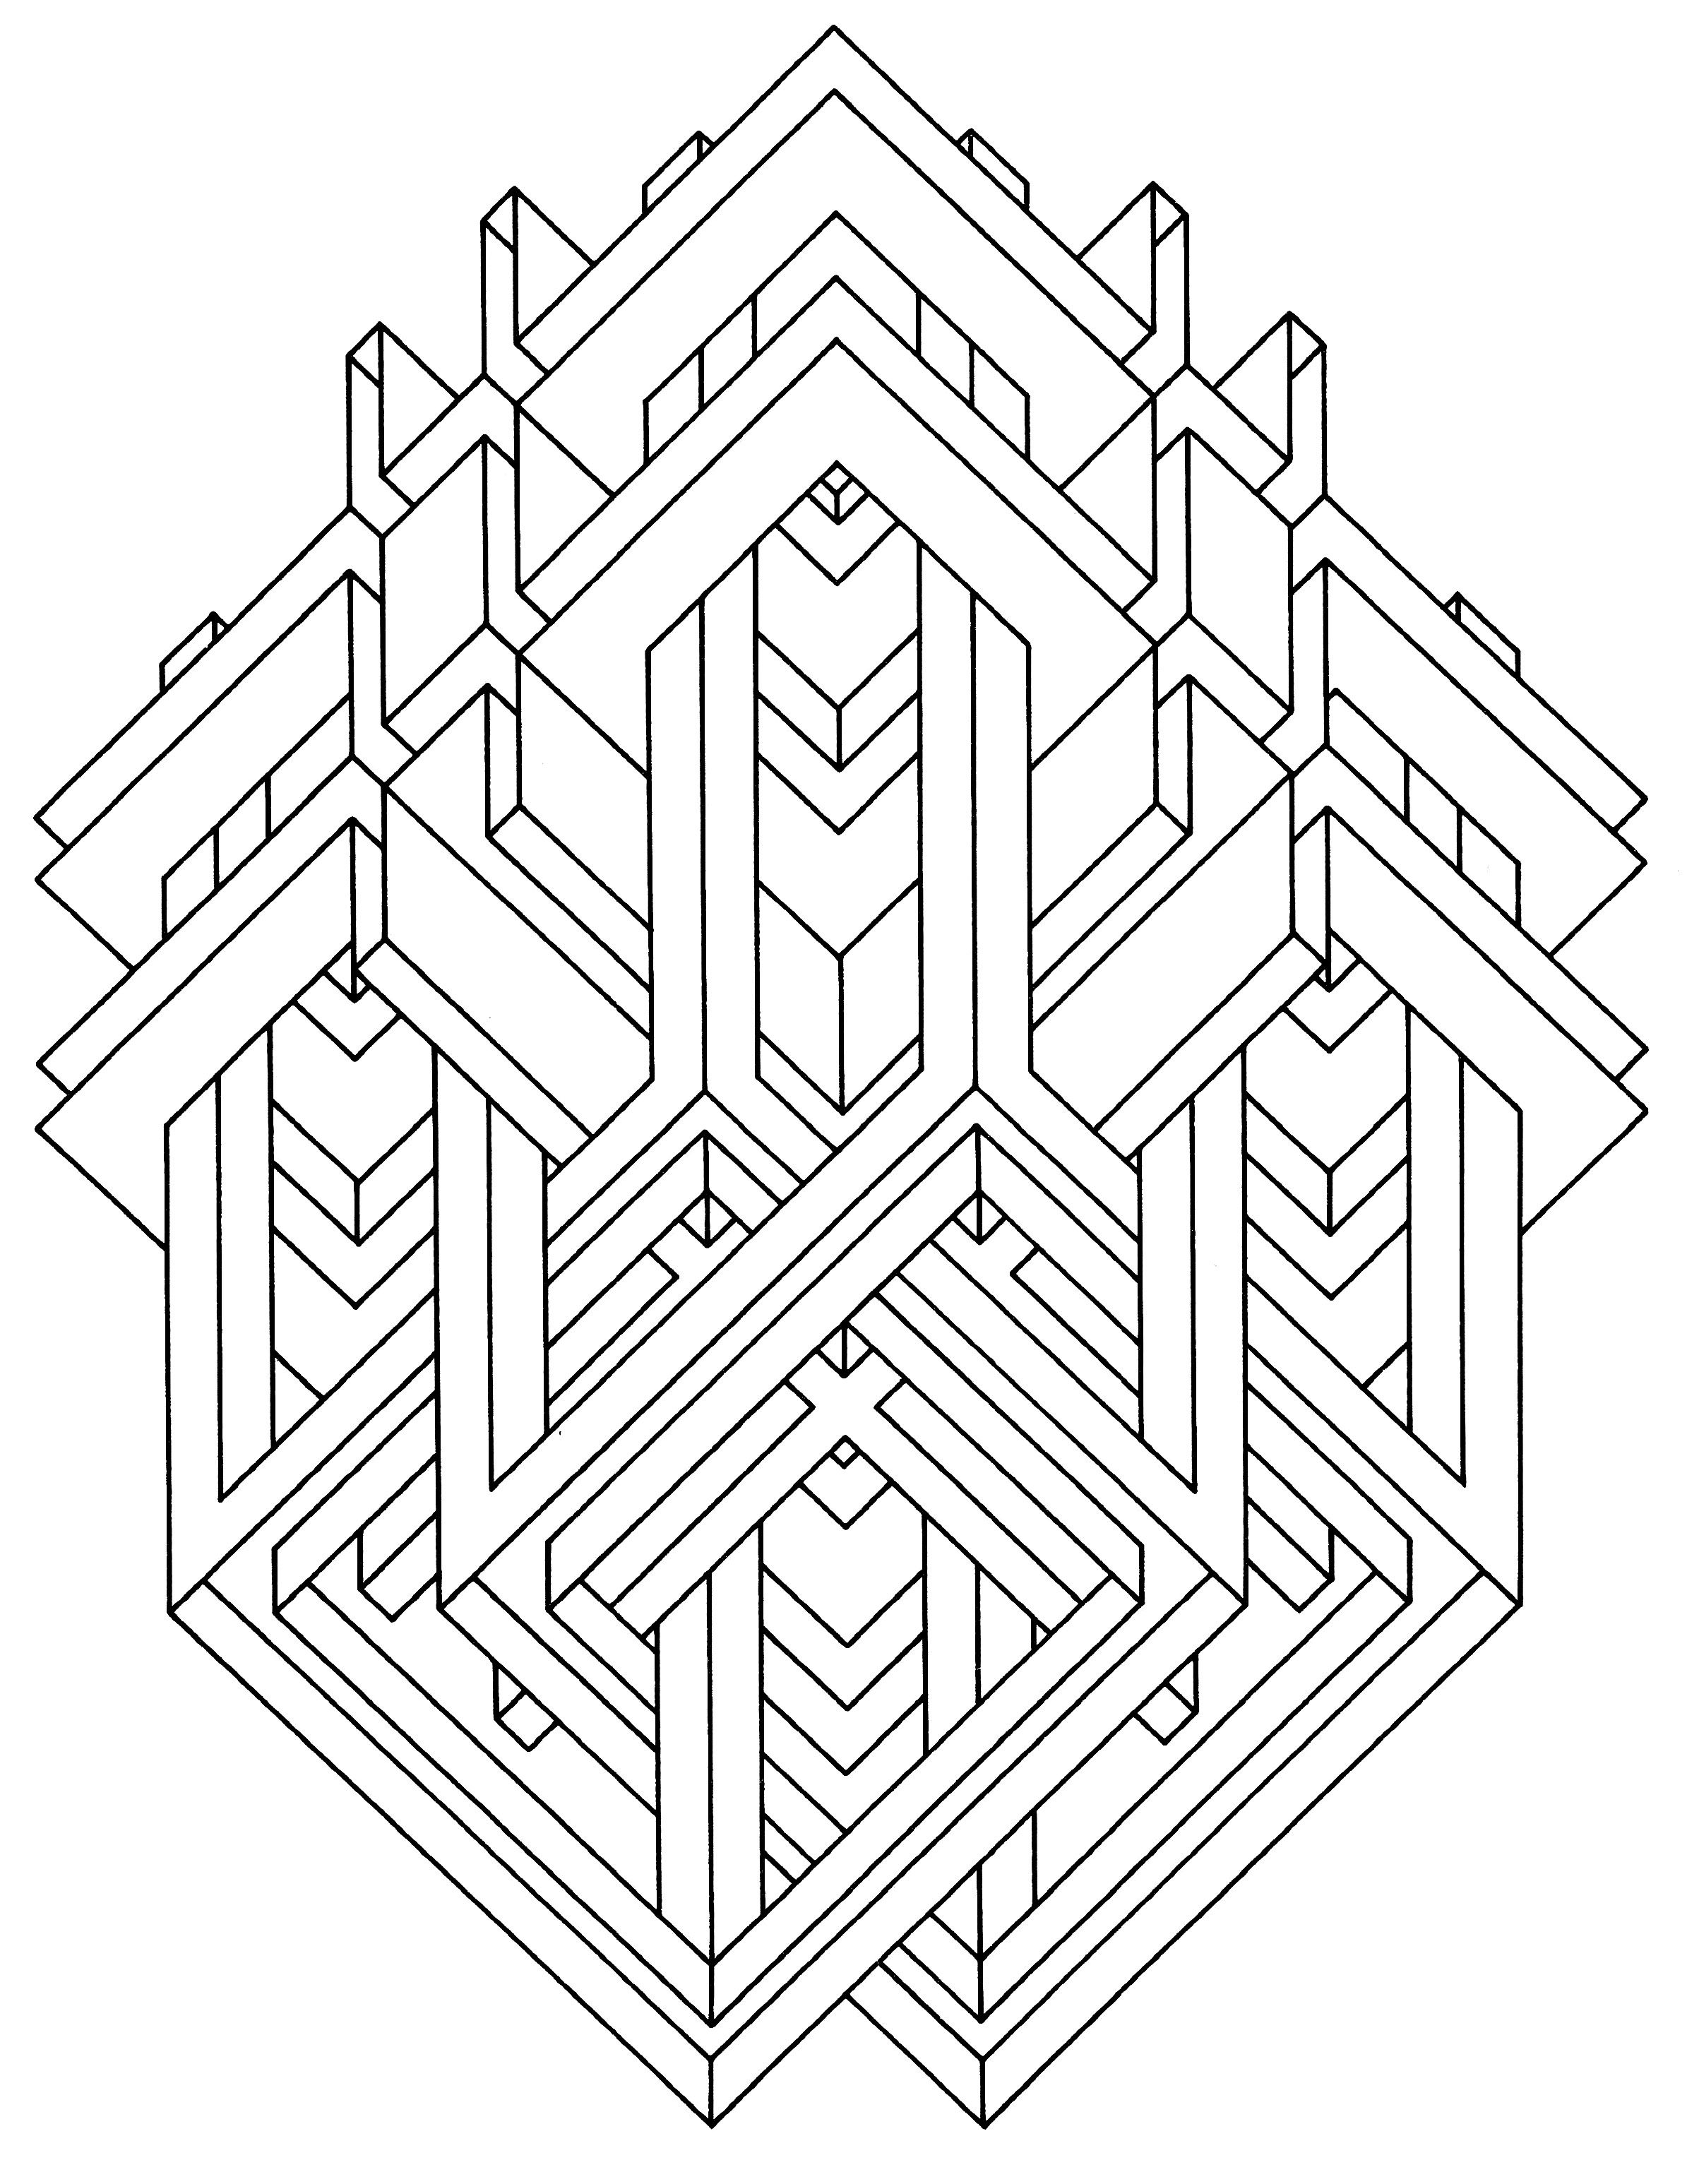 victor vasarely coloring pages | To print this free coloring page «coloring-op-art-jean ...